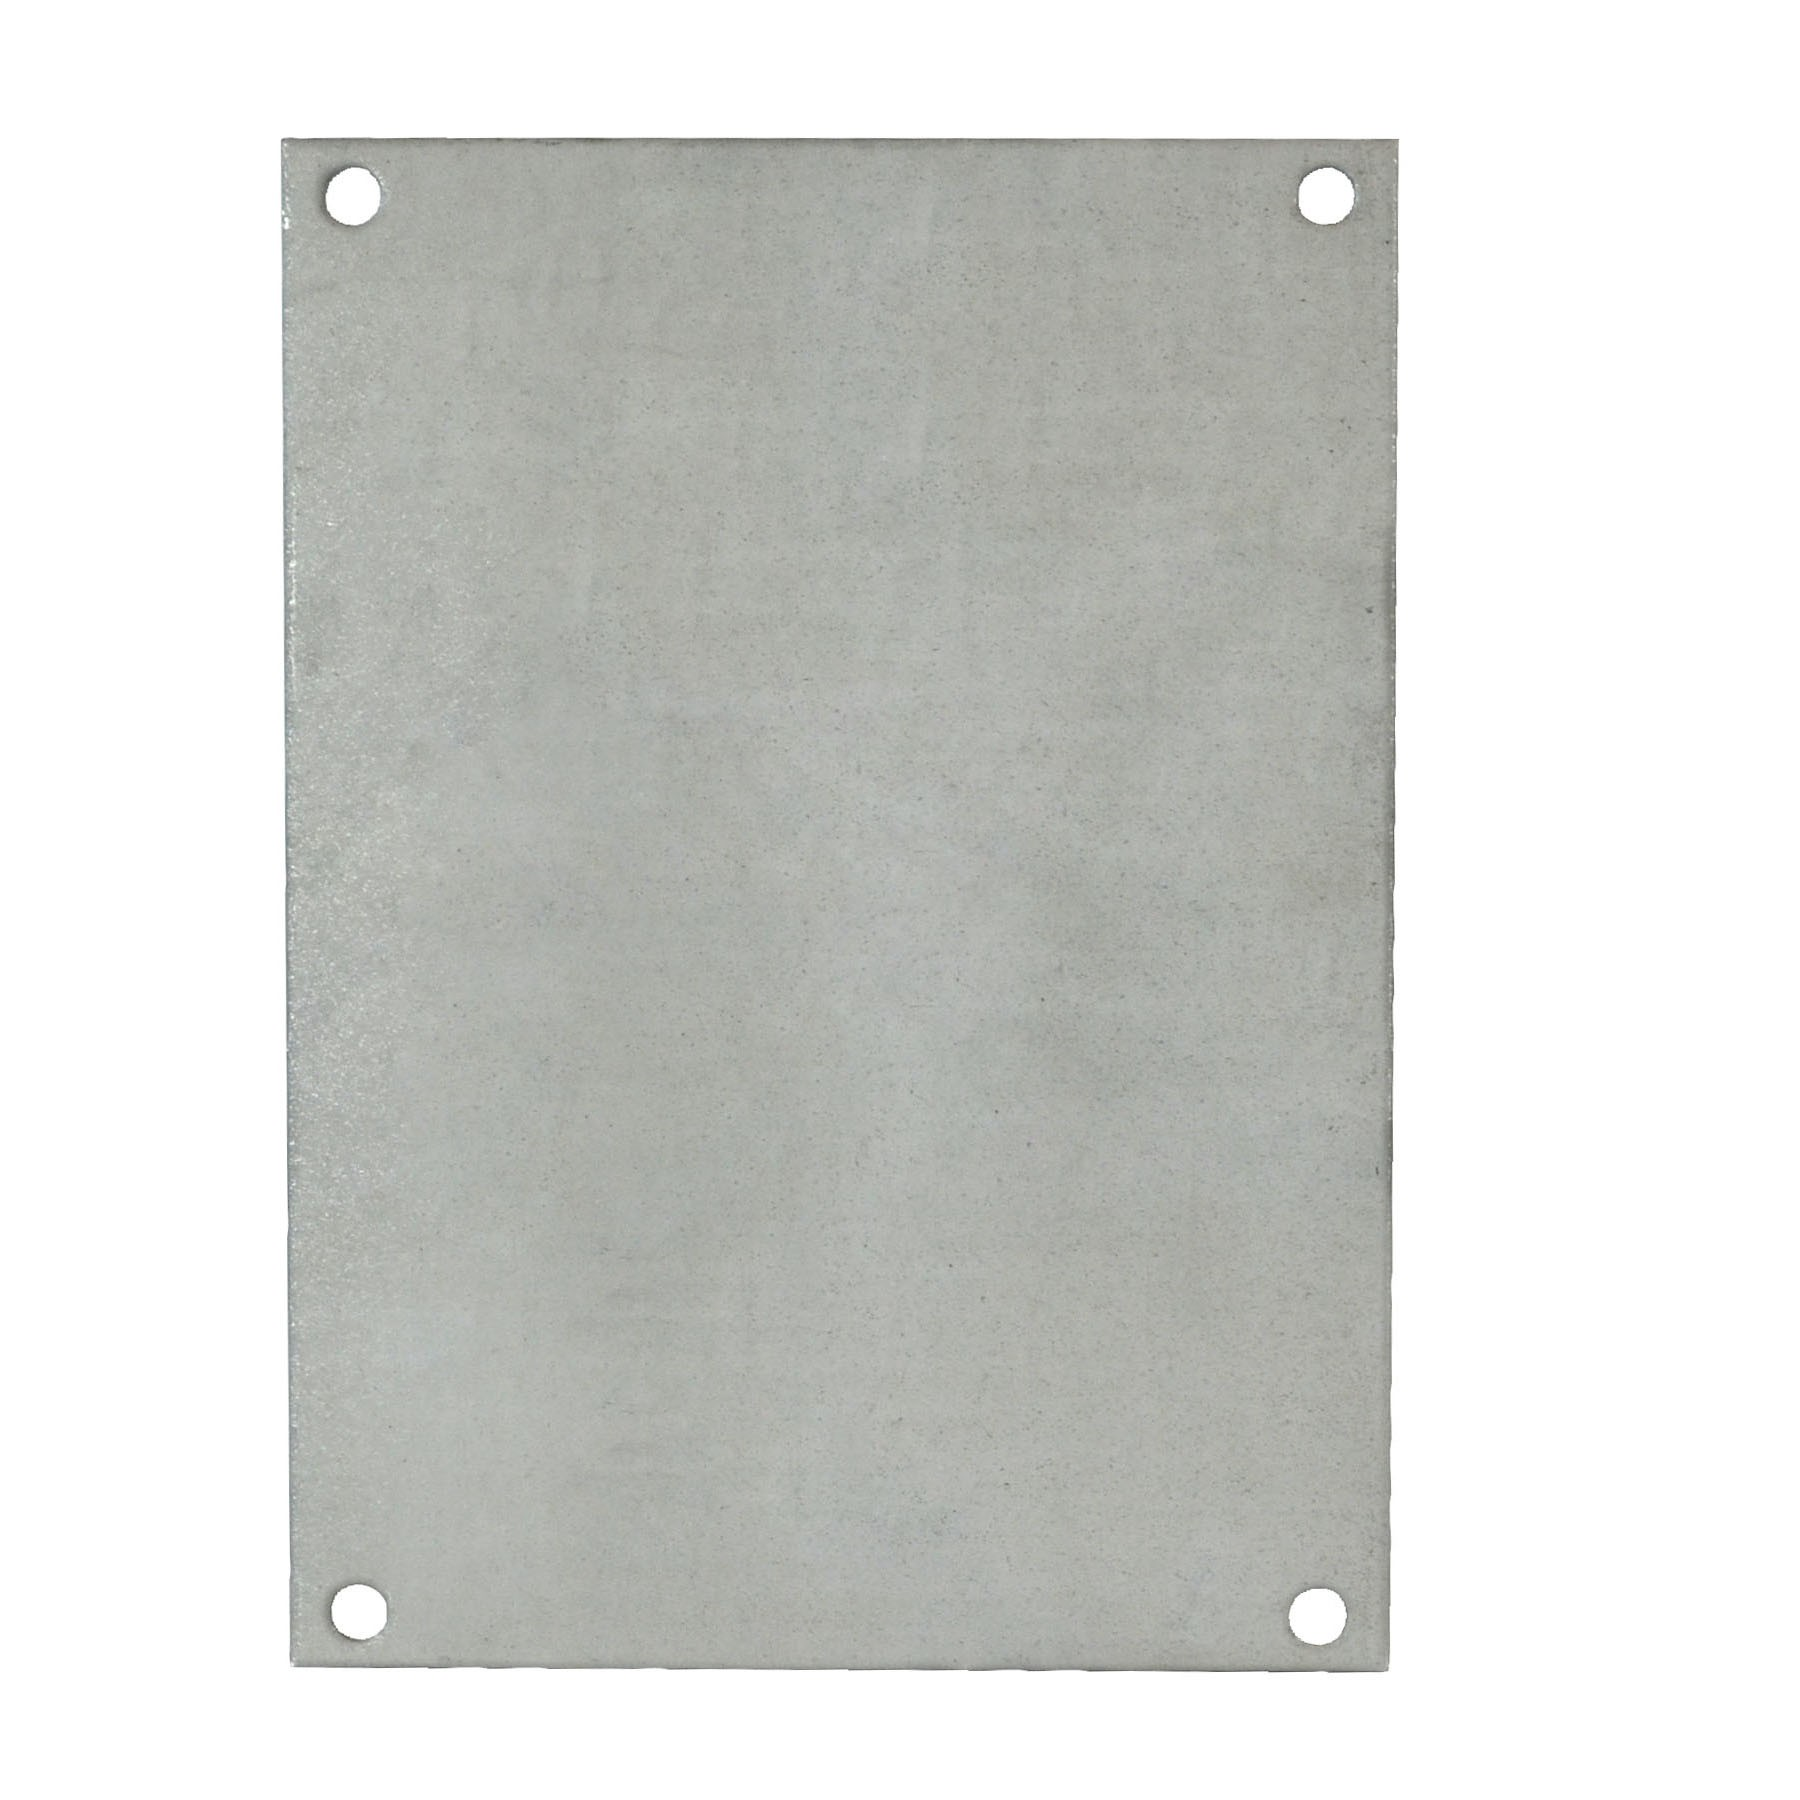 "Galvanized Back Panel for 16"" x 14"" Enclosures"